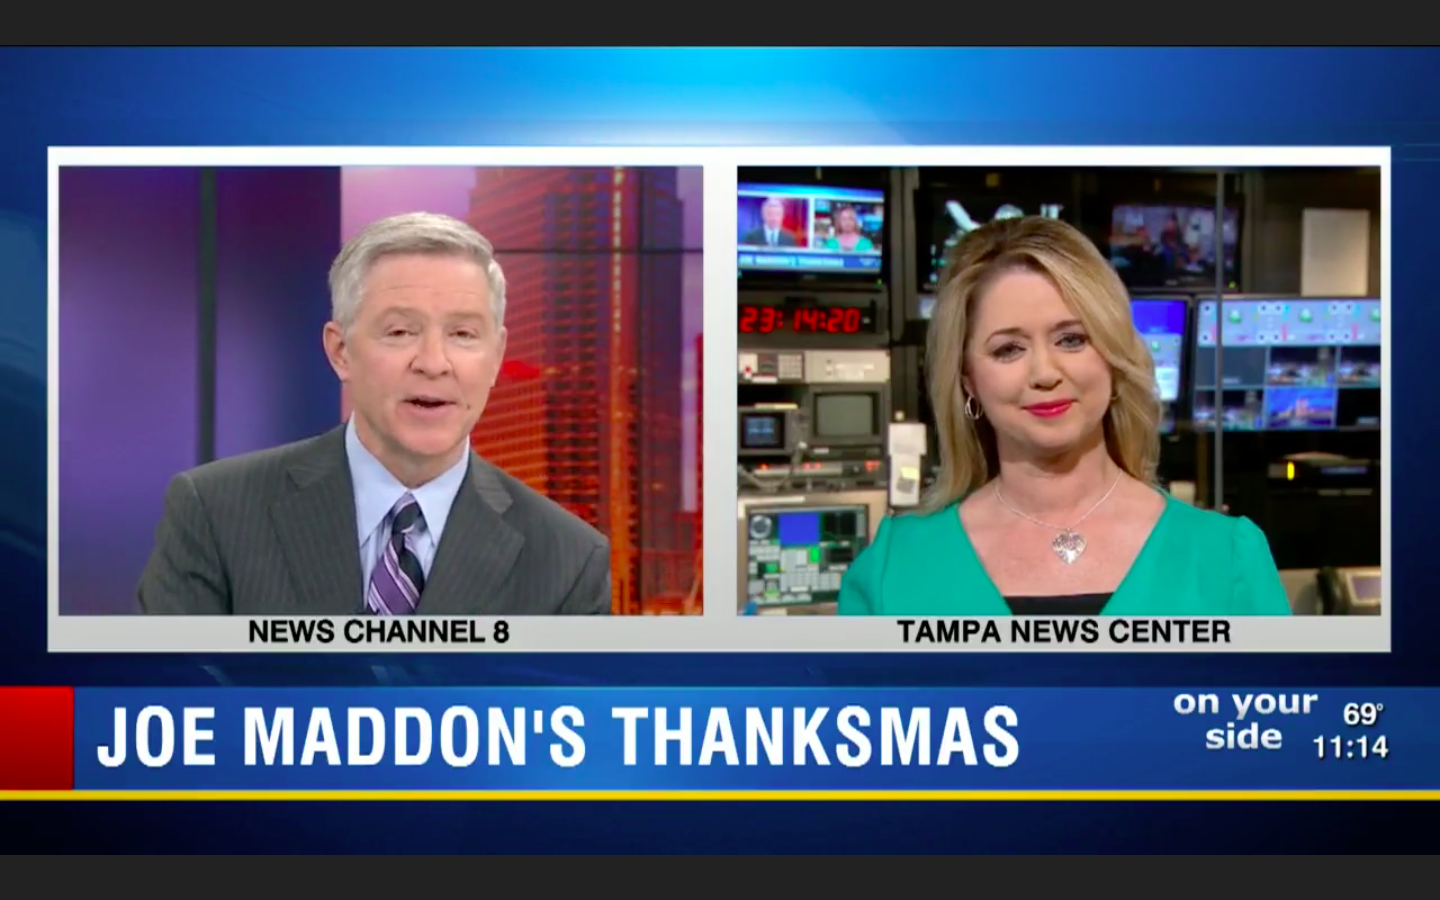 Former Rays manager Joe Maddon speaks on meaning of Thanksmas